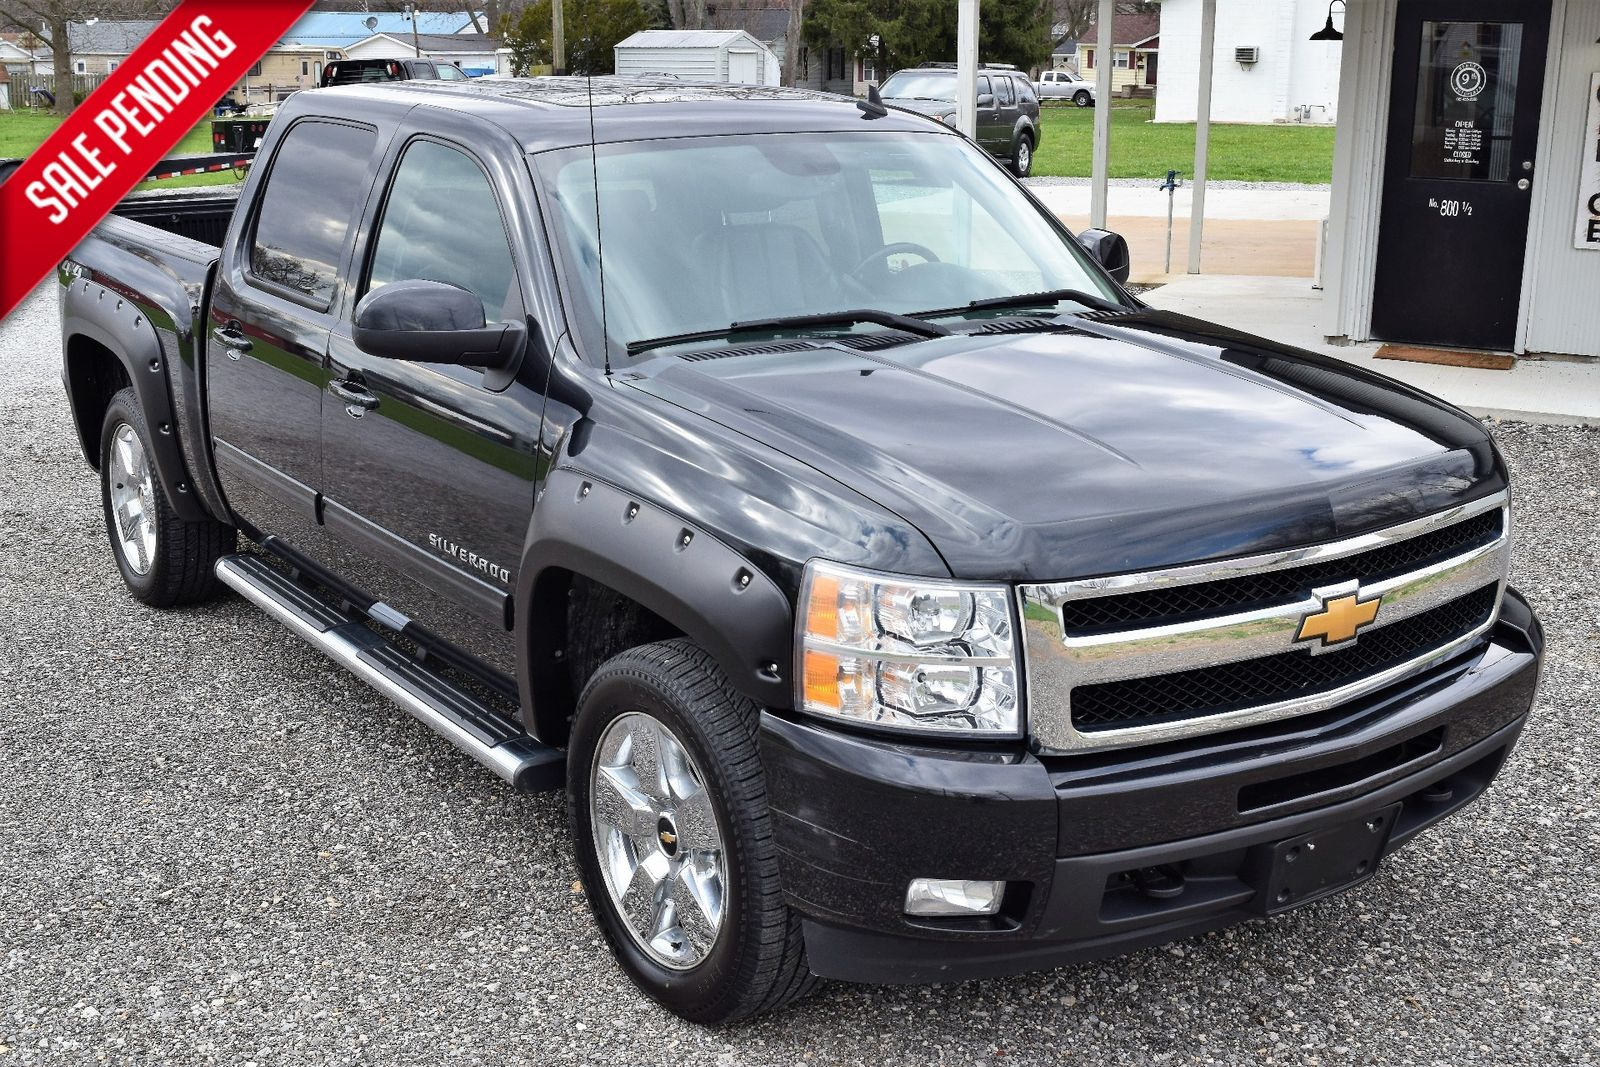 l view review prices car ratings connection overview photos front the chevy and silverado lt specs chevrolet cab ext exterior angular